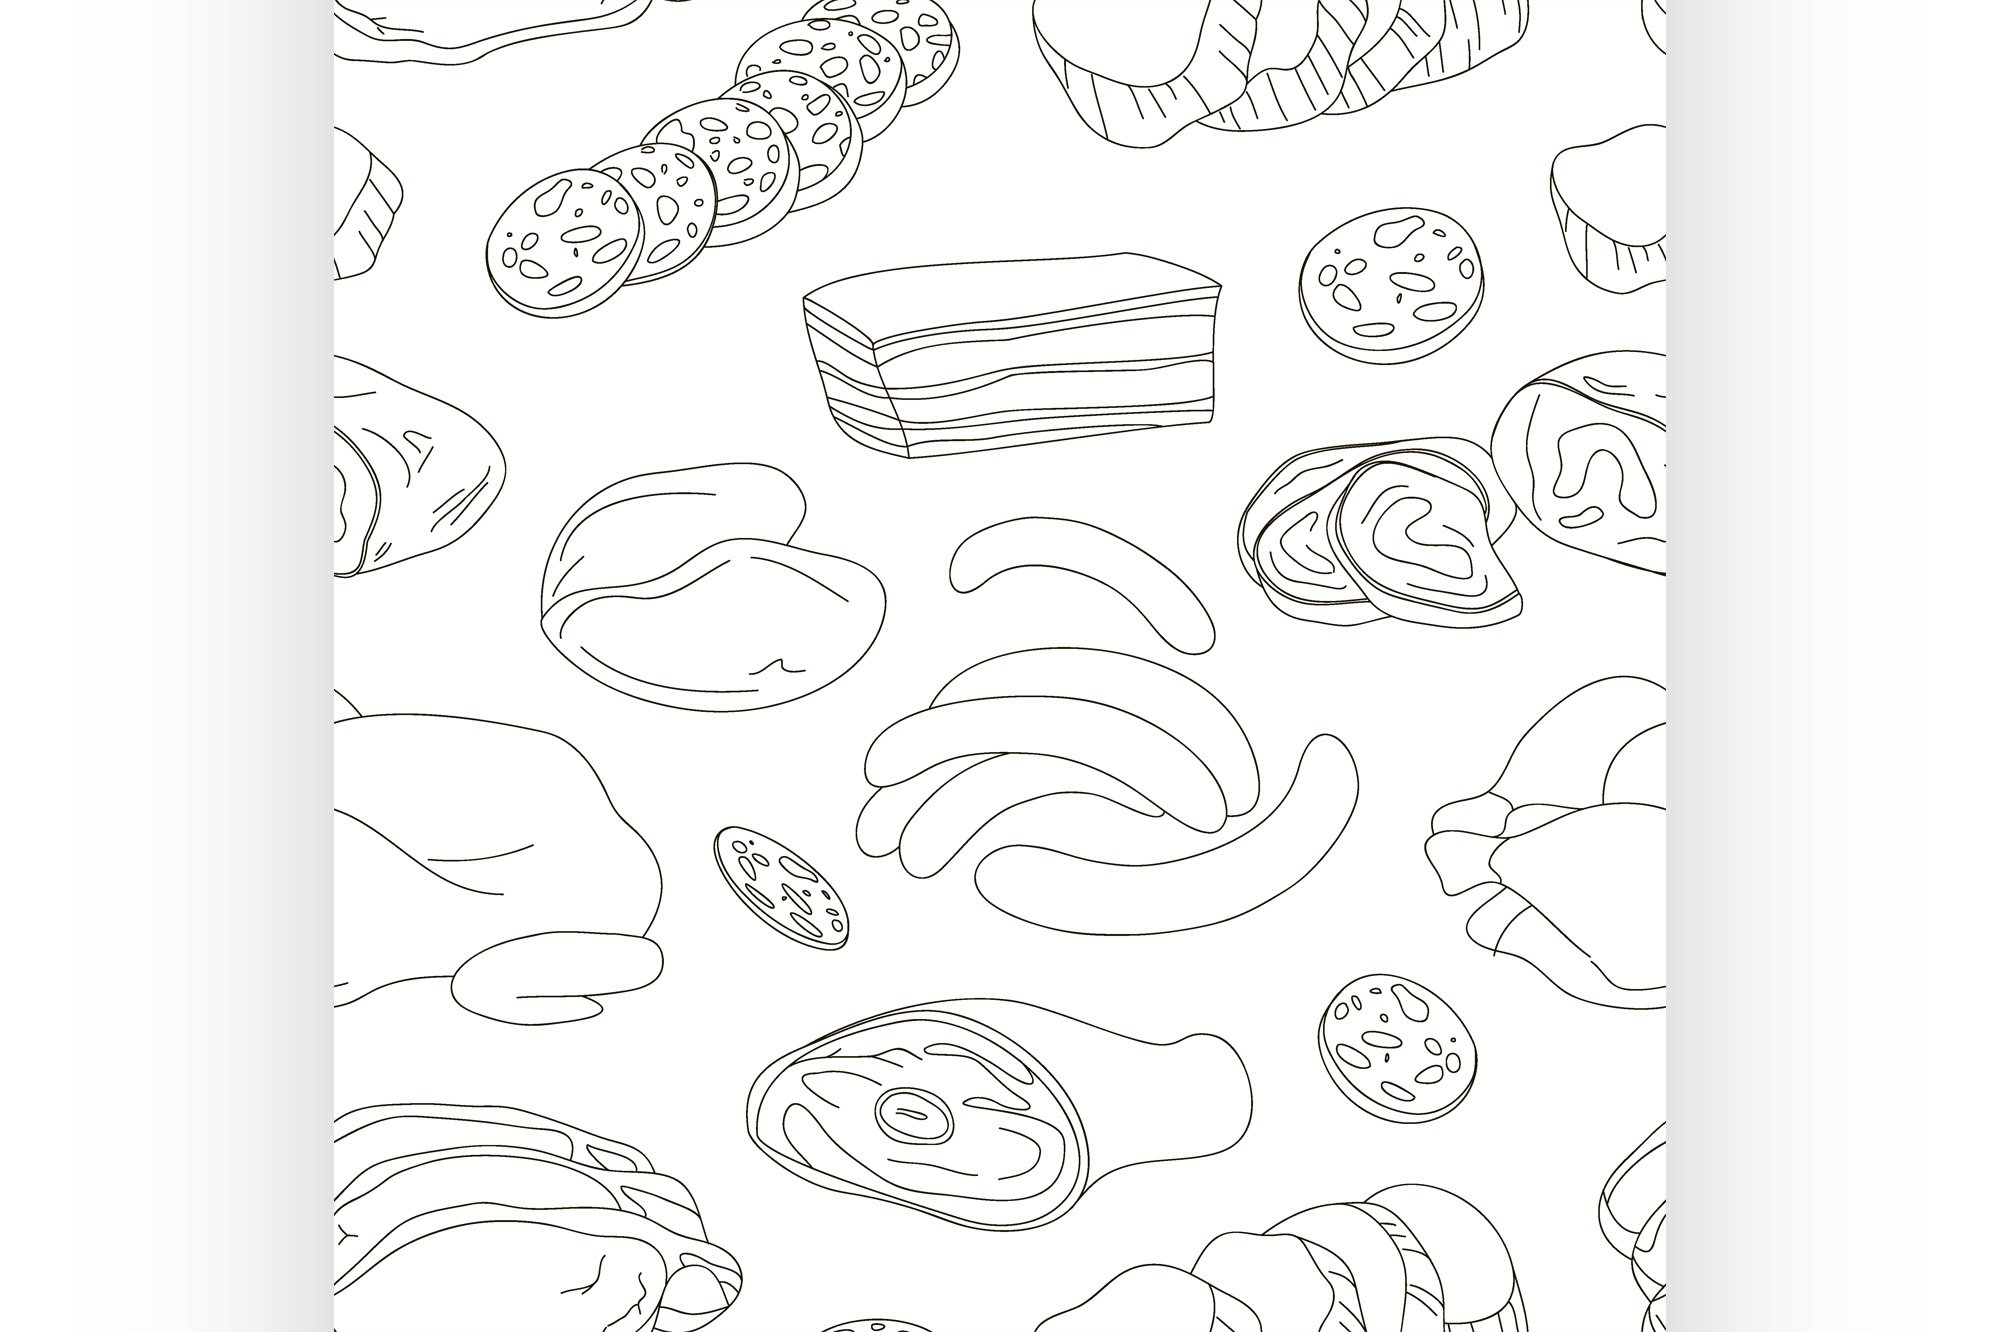 Different kinds of meat collection pattern example image 1